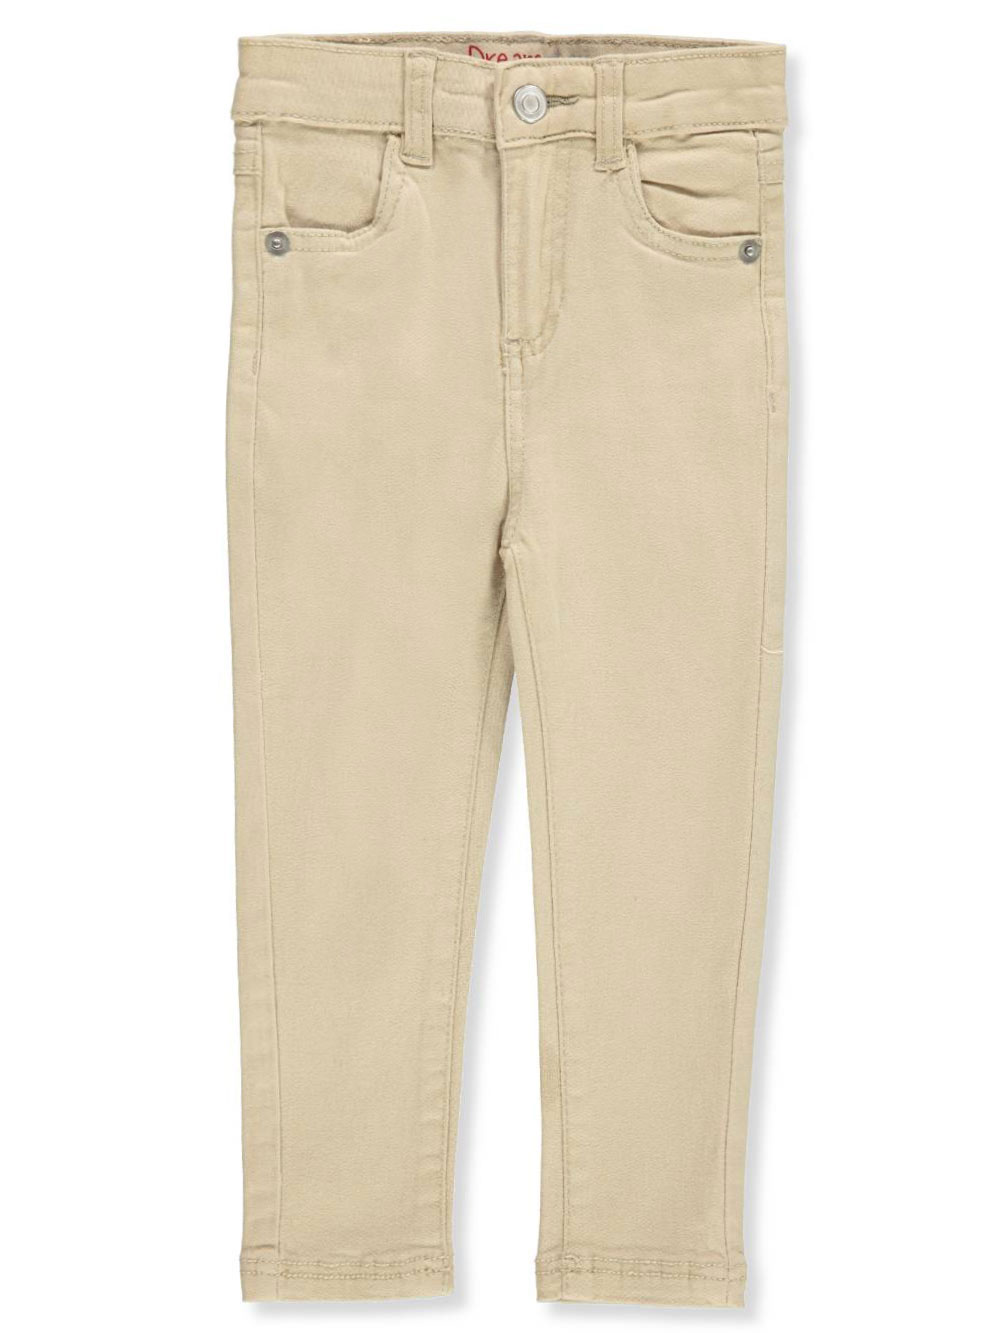 Jeans Stretch Twill Construction